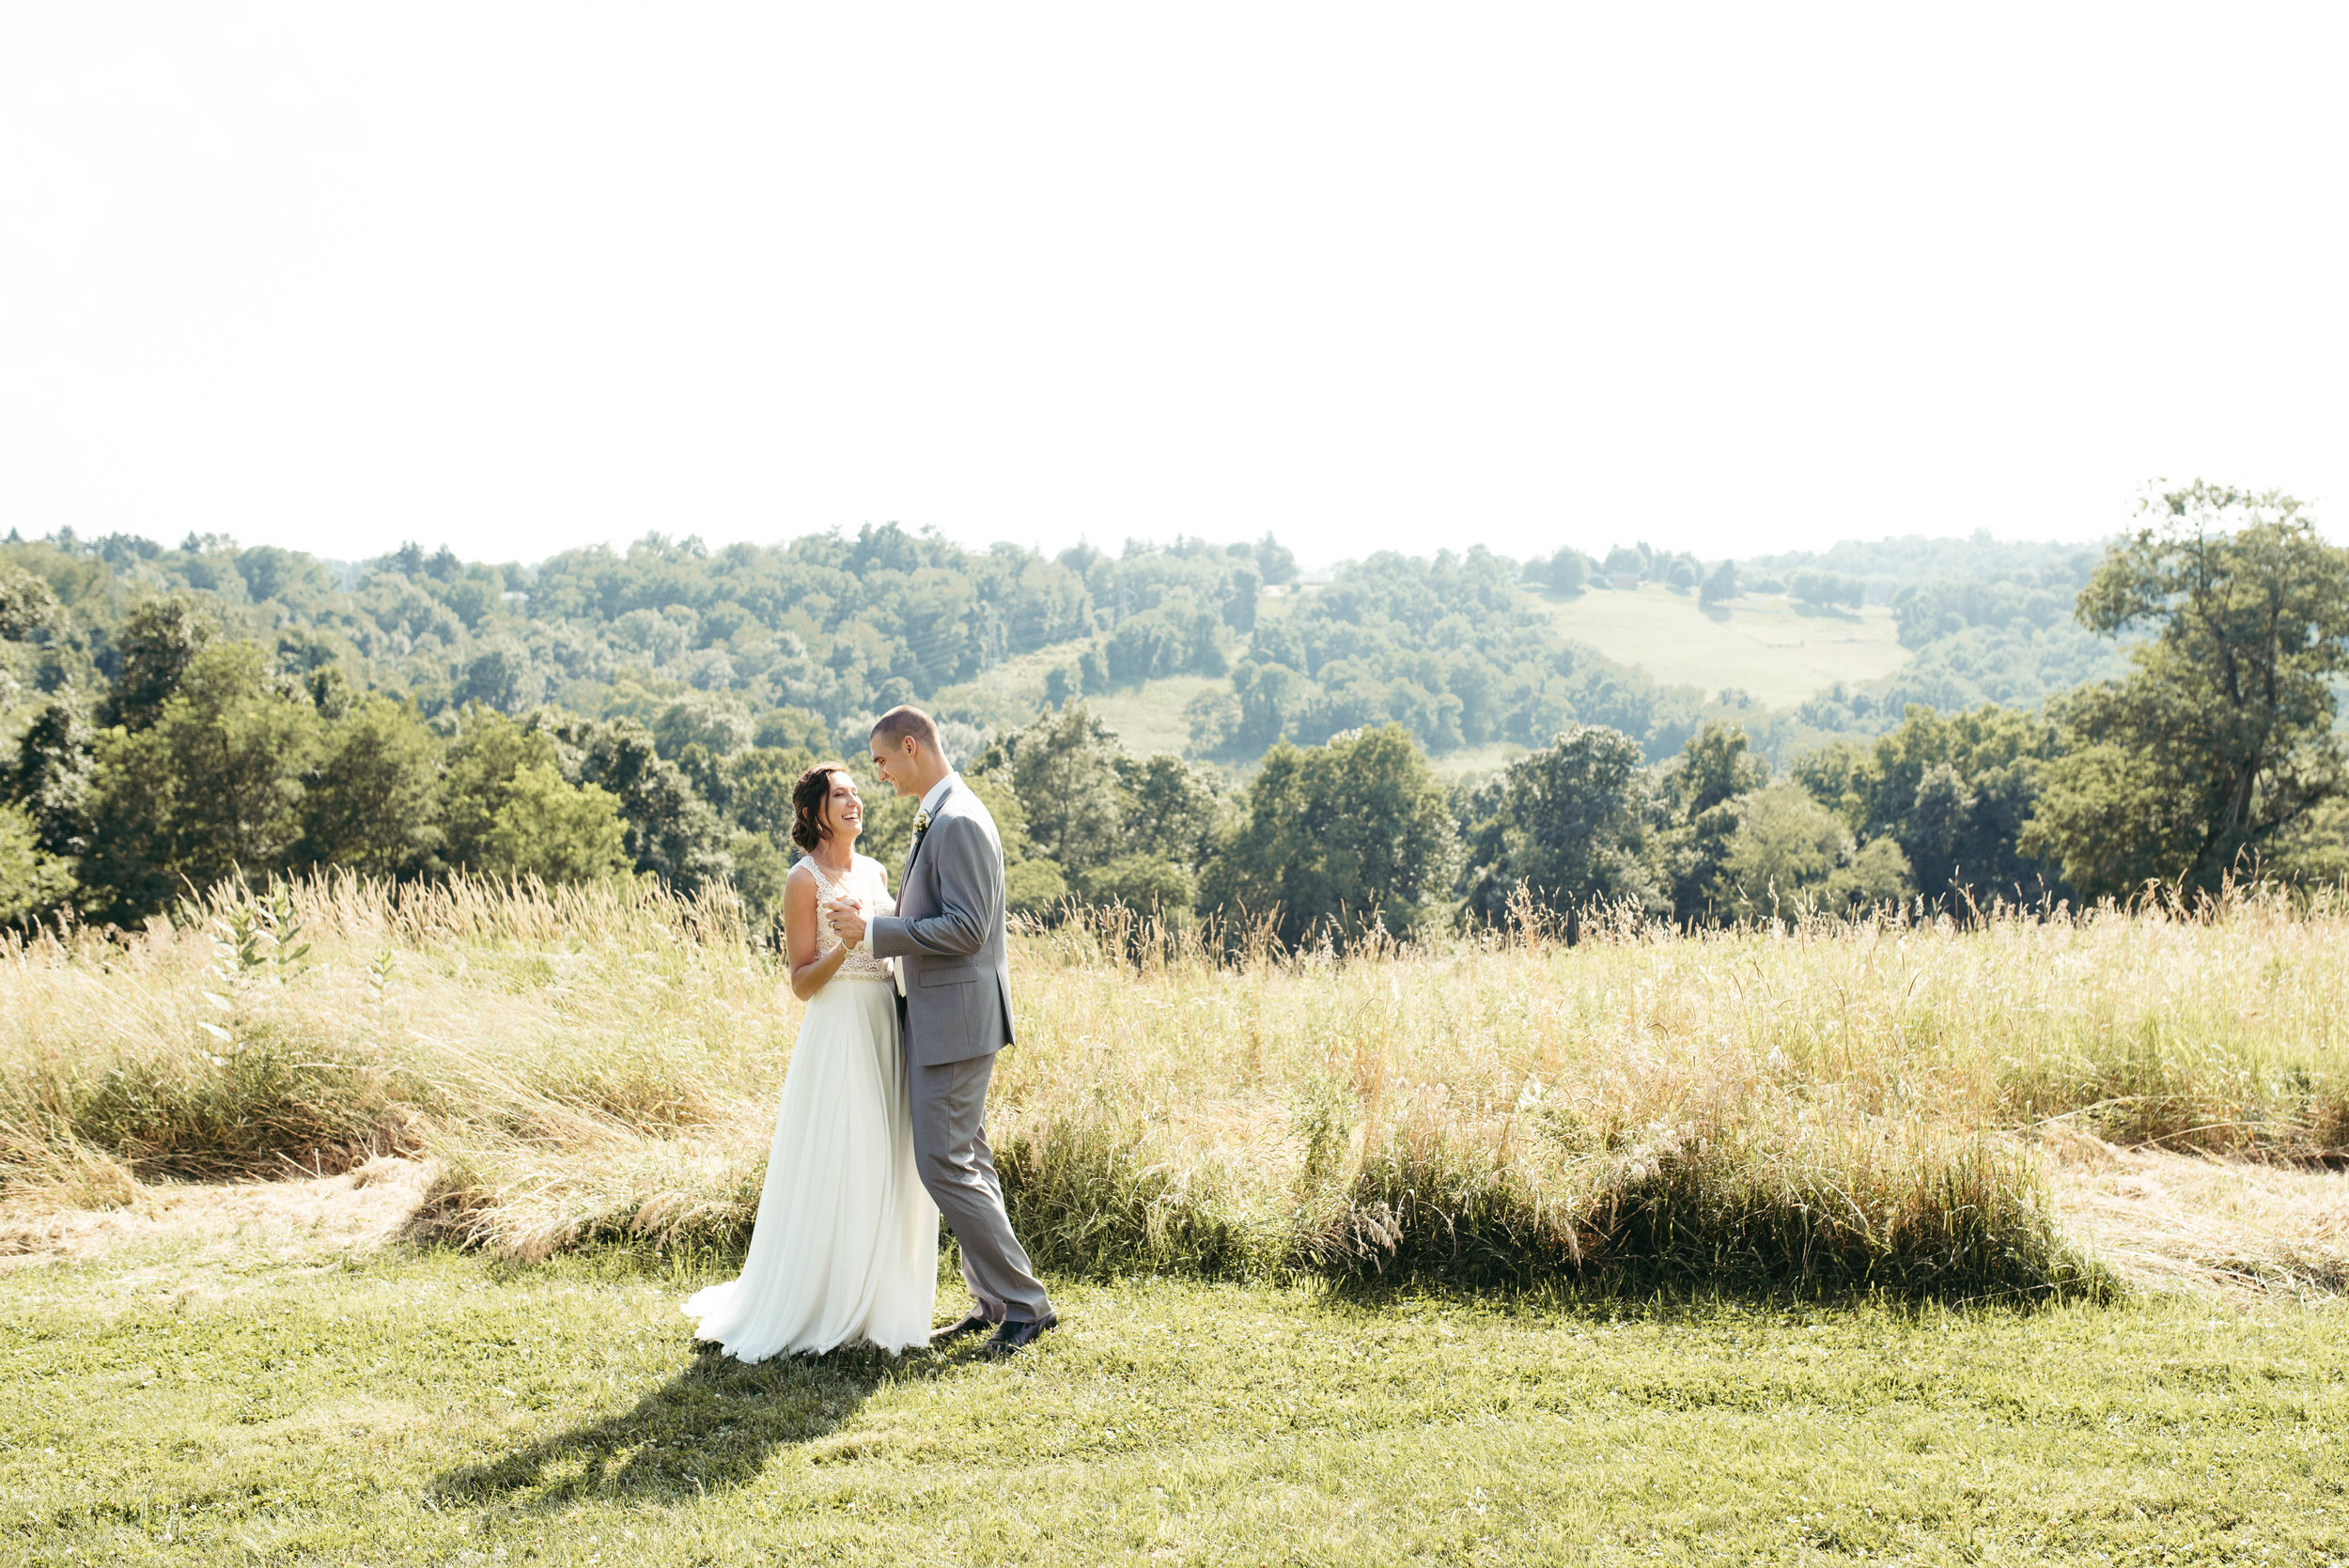 farm wedding pittsburgh-52.jpg